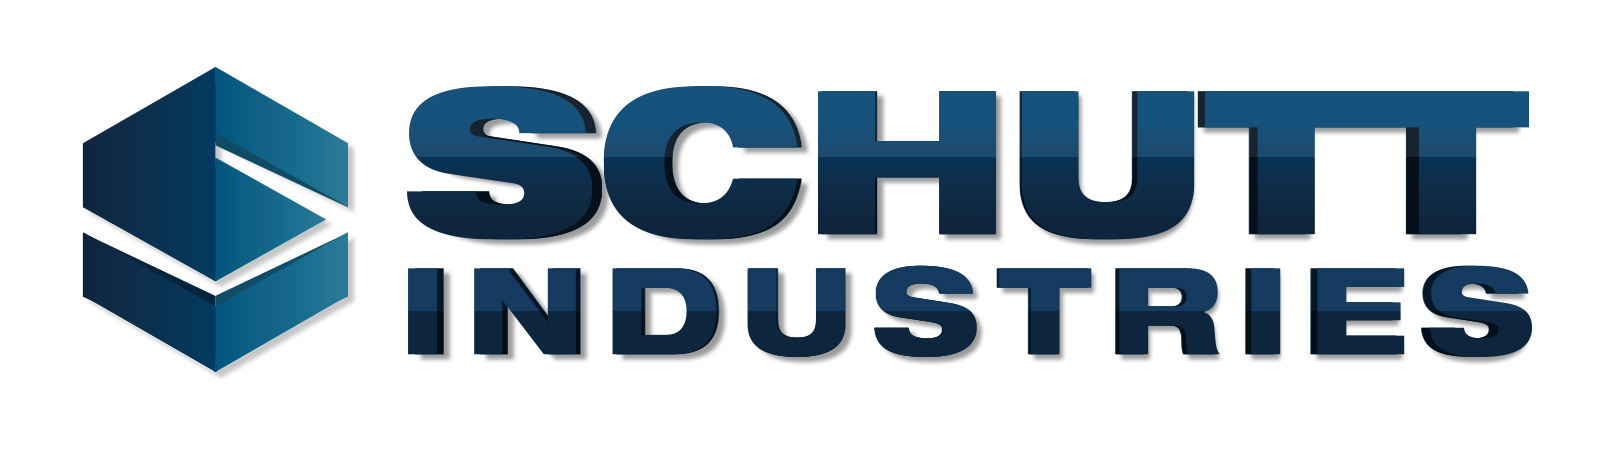 Schutt Industries logo